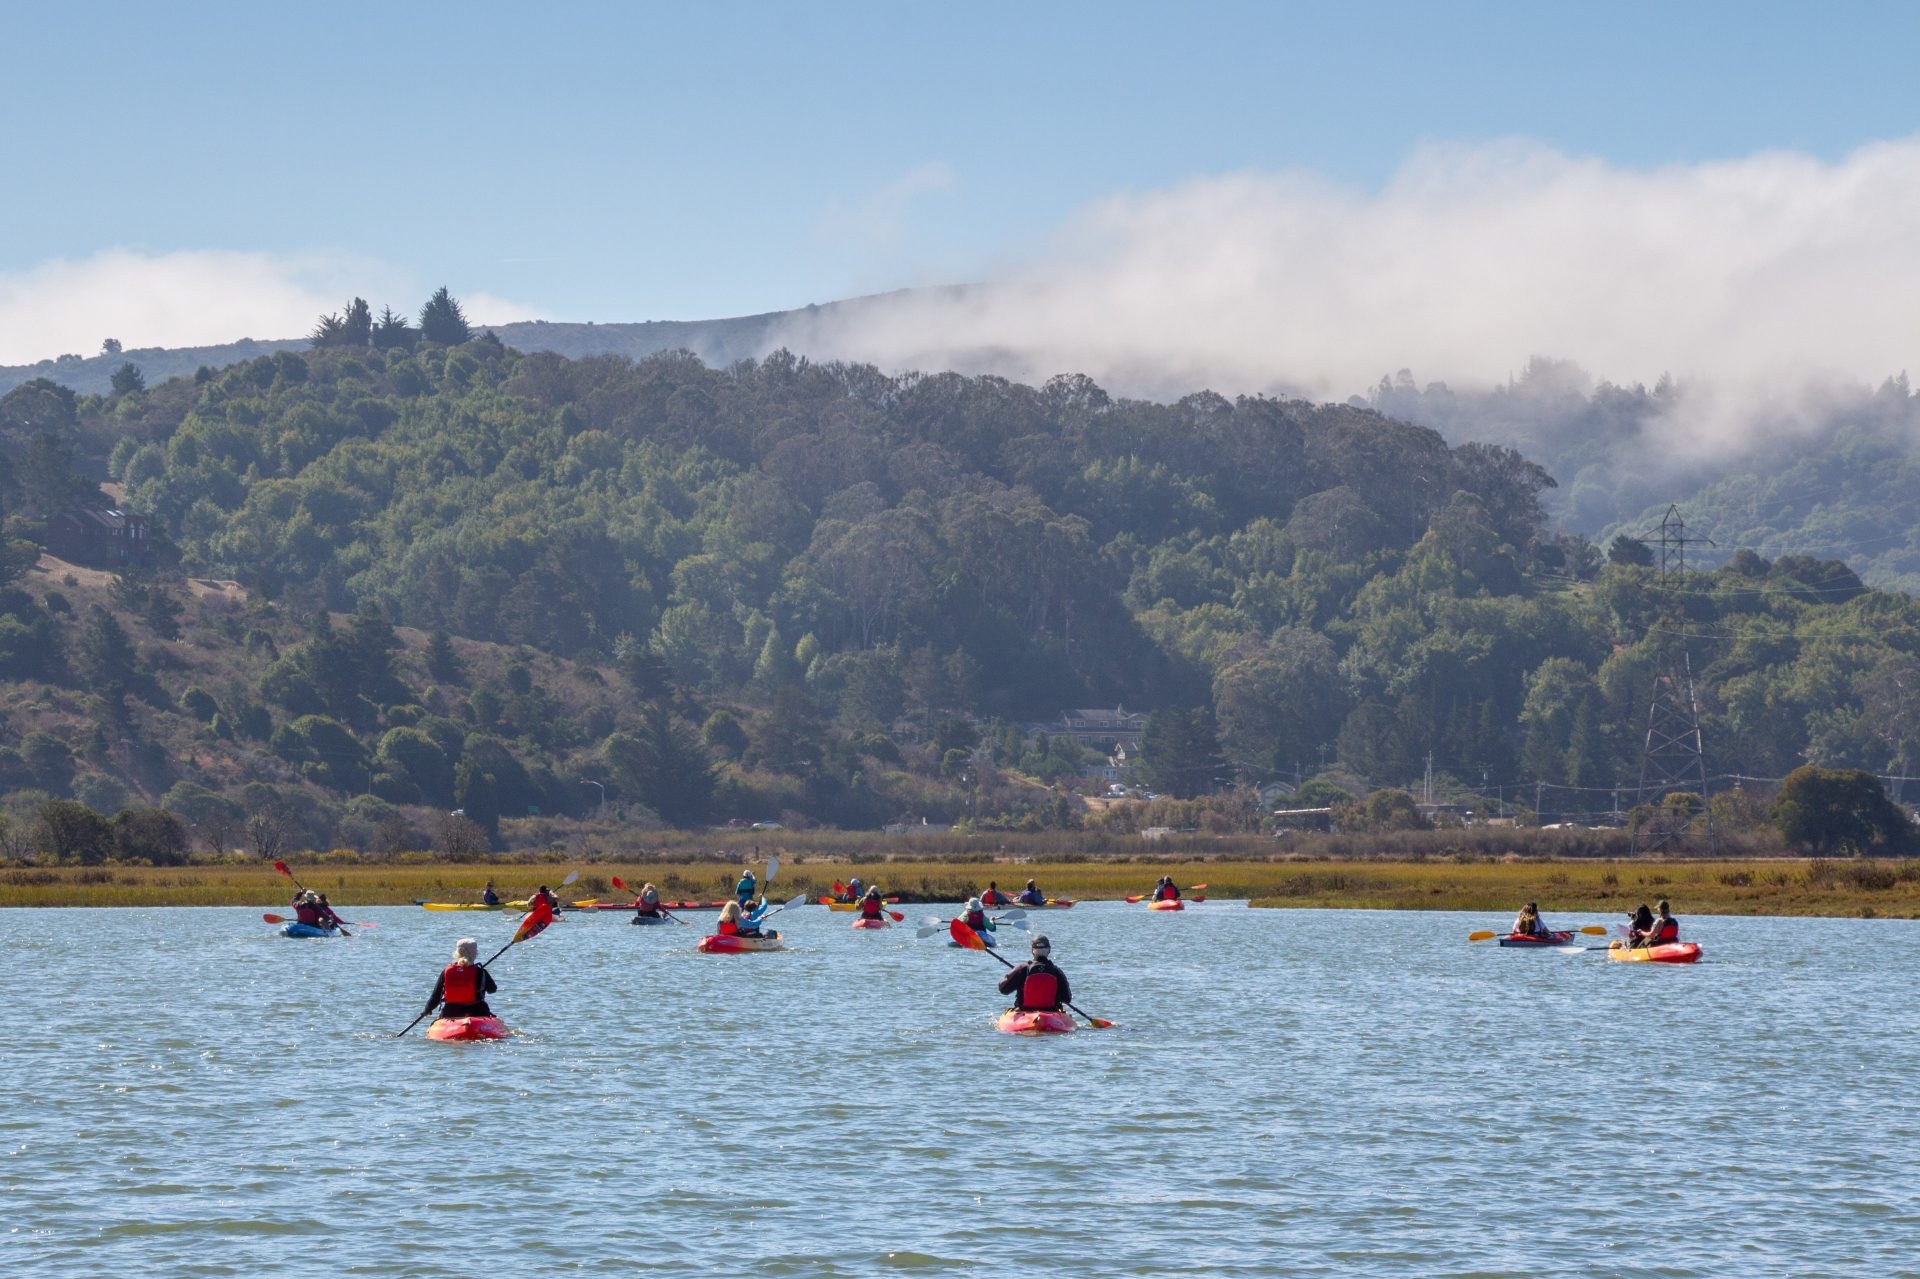 large group of kayakers in distance, forested hillsides and fog beyond